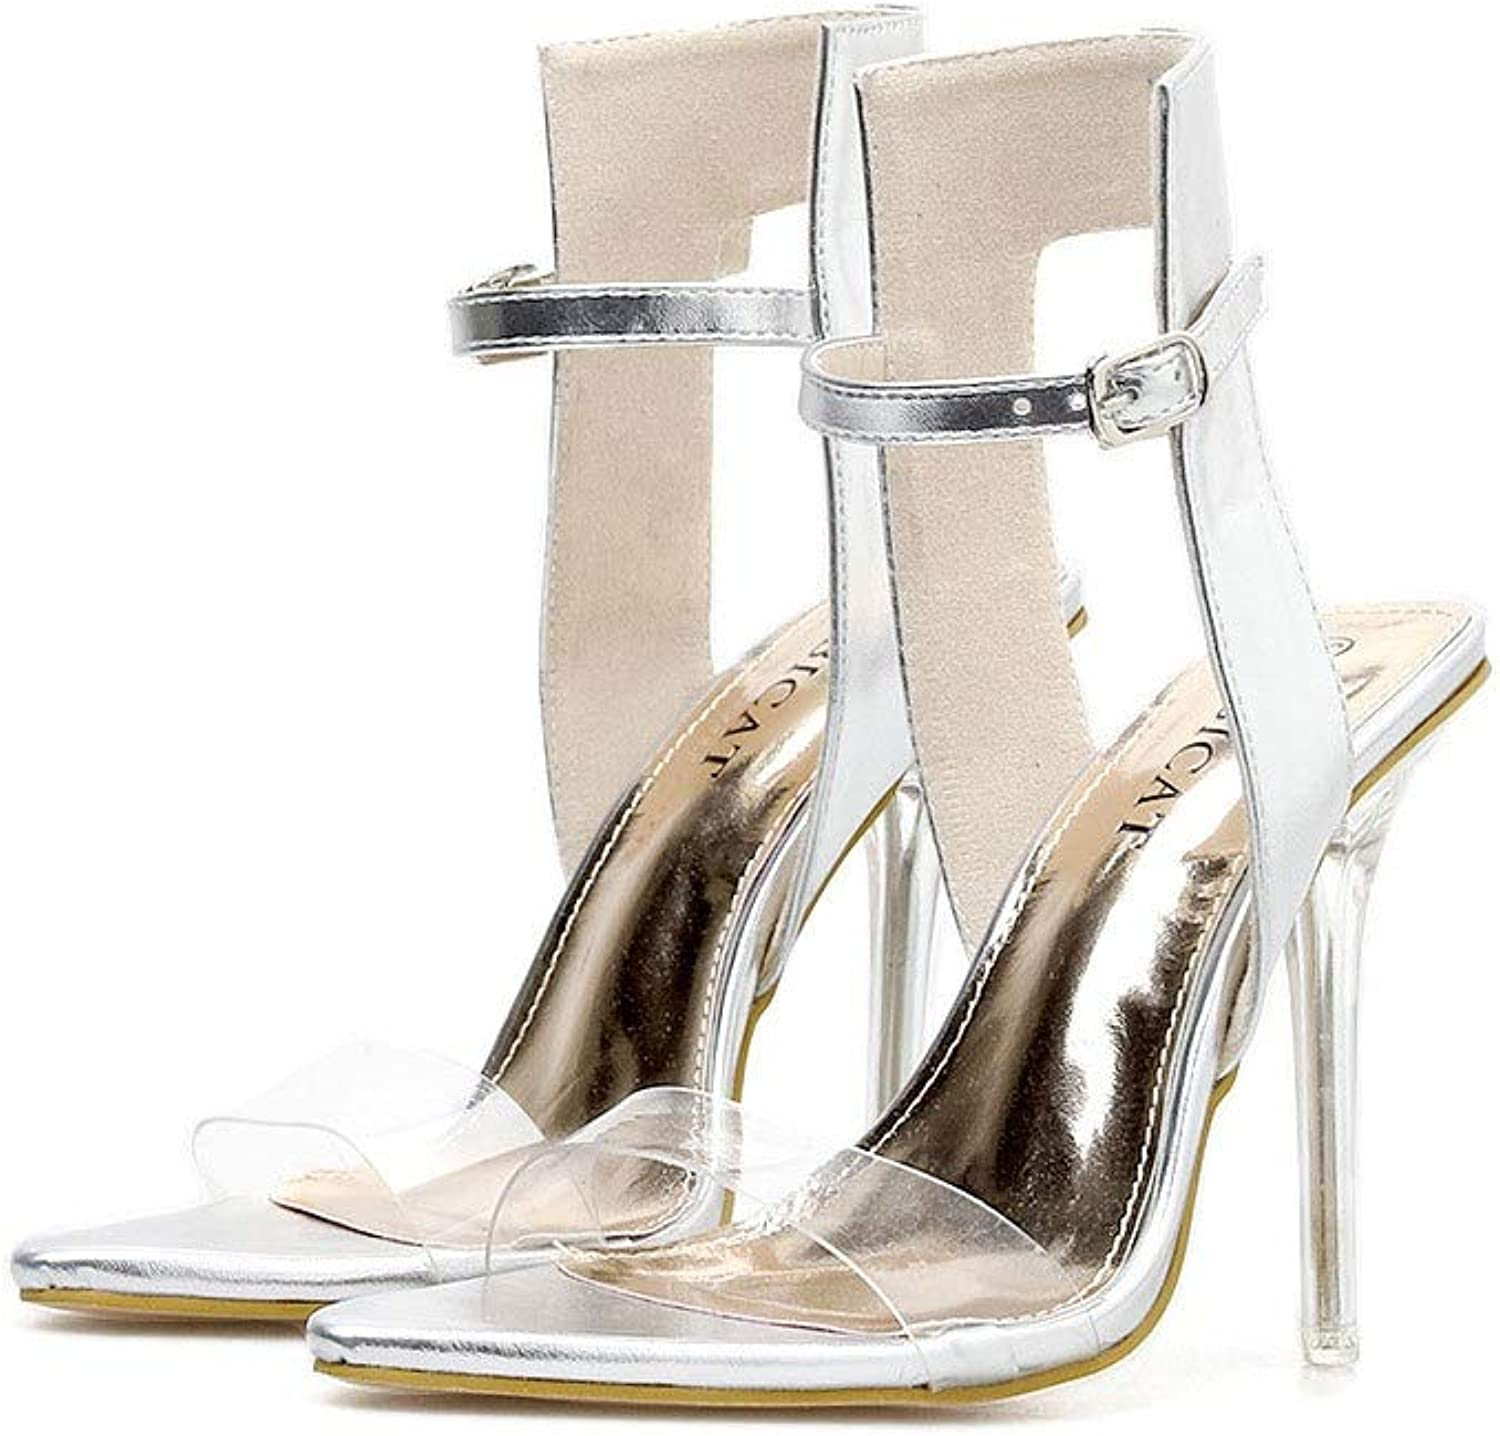 Summer Crystal and Pointed Sandals, Women's High Heel Sandals (color   Silver, Size   5.5 US)